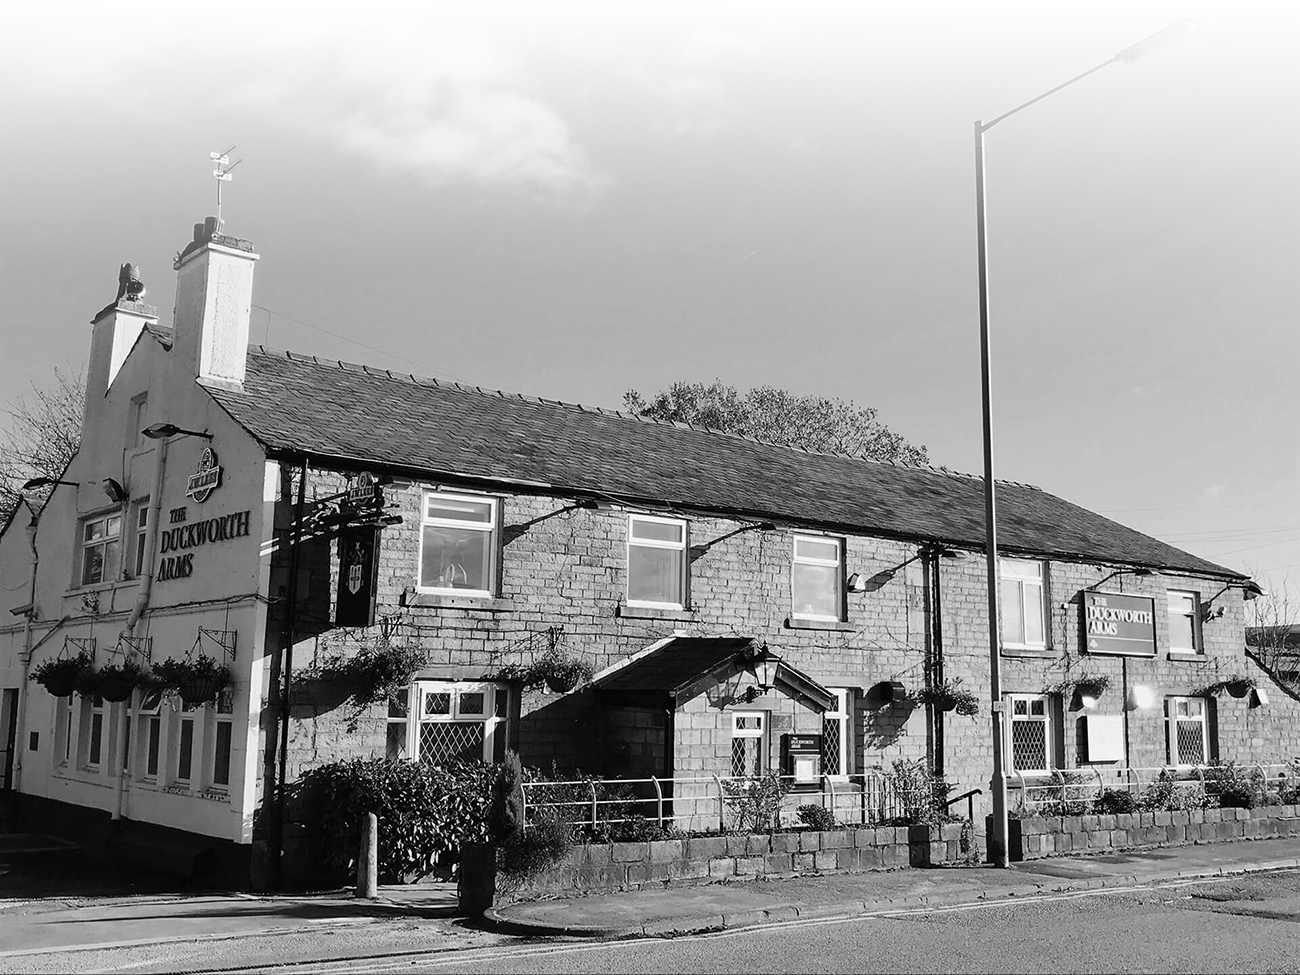 The Duckworth Arms